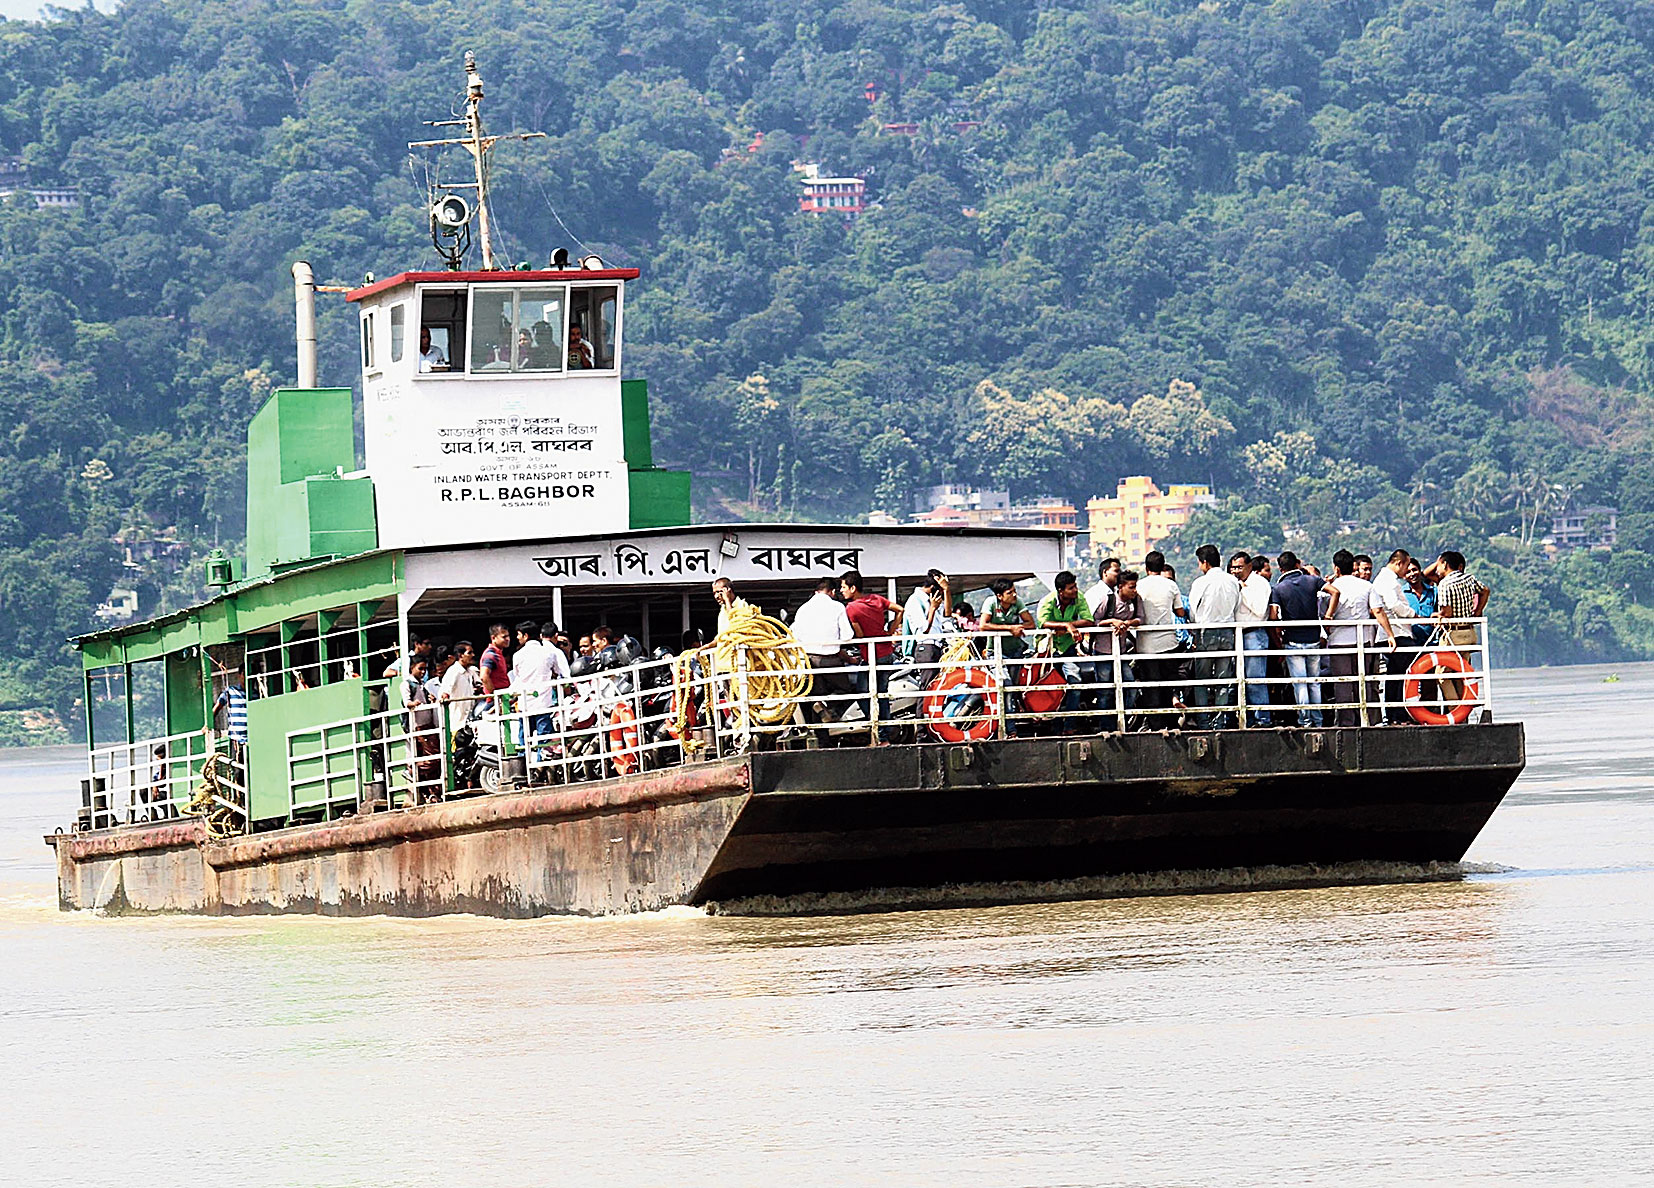 A ferry filled with passengers on the Brahmaputra.